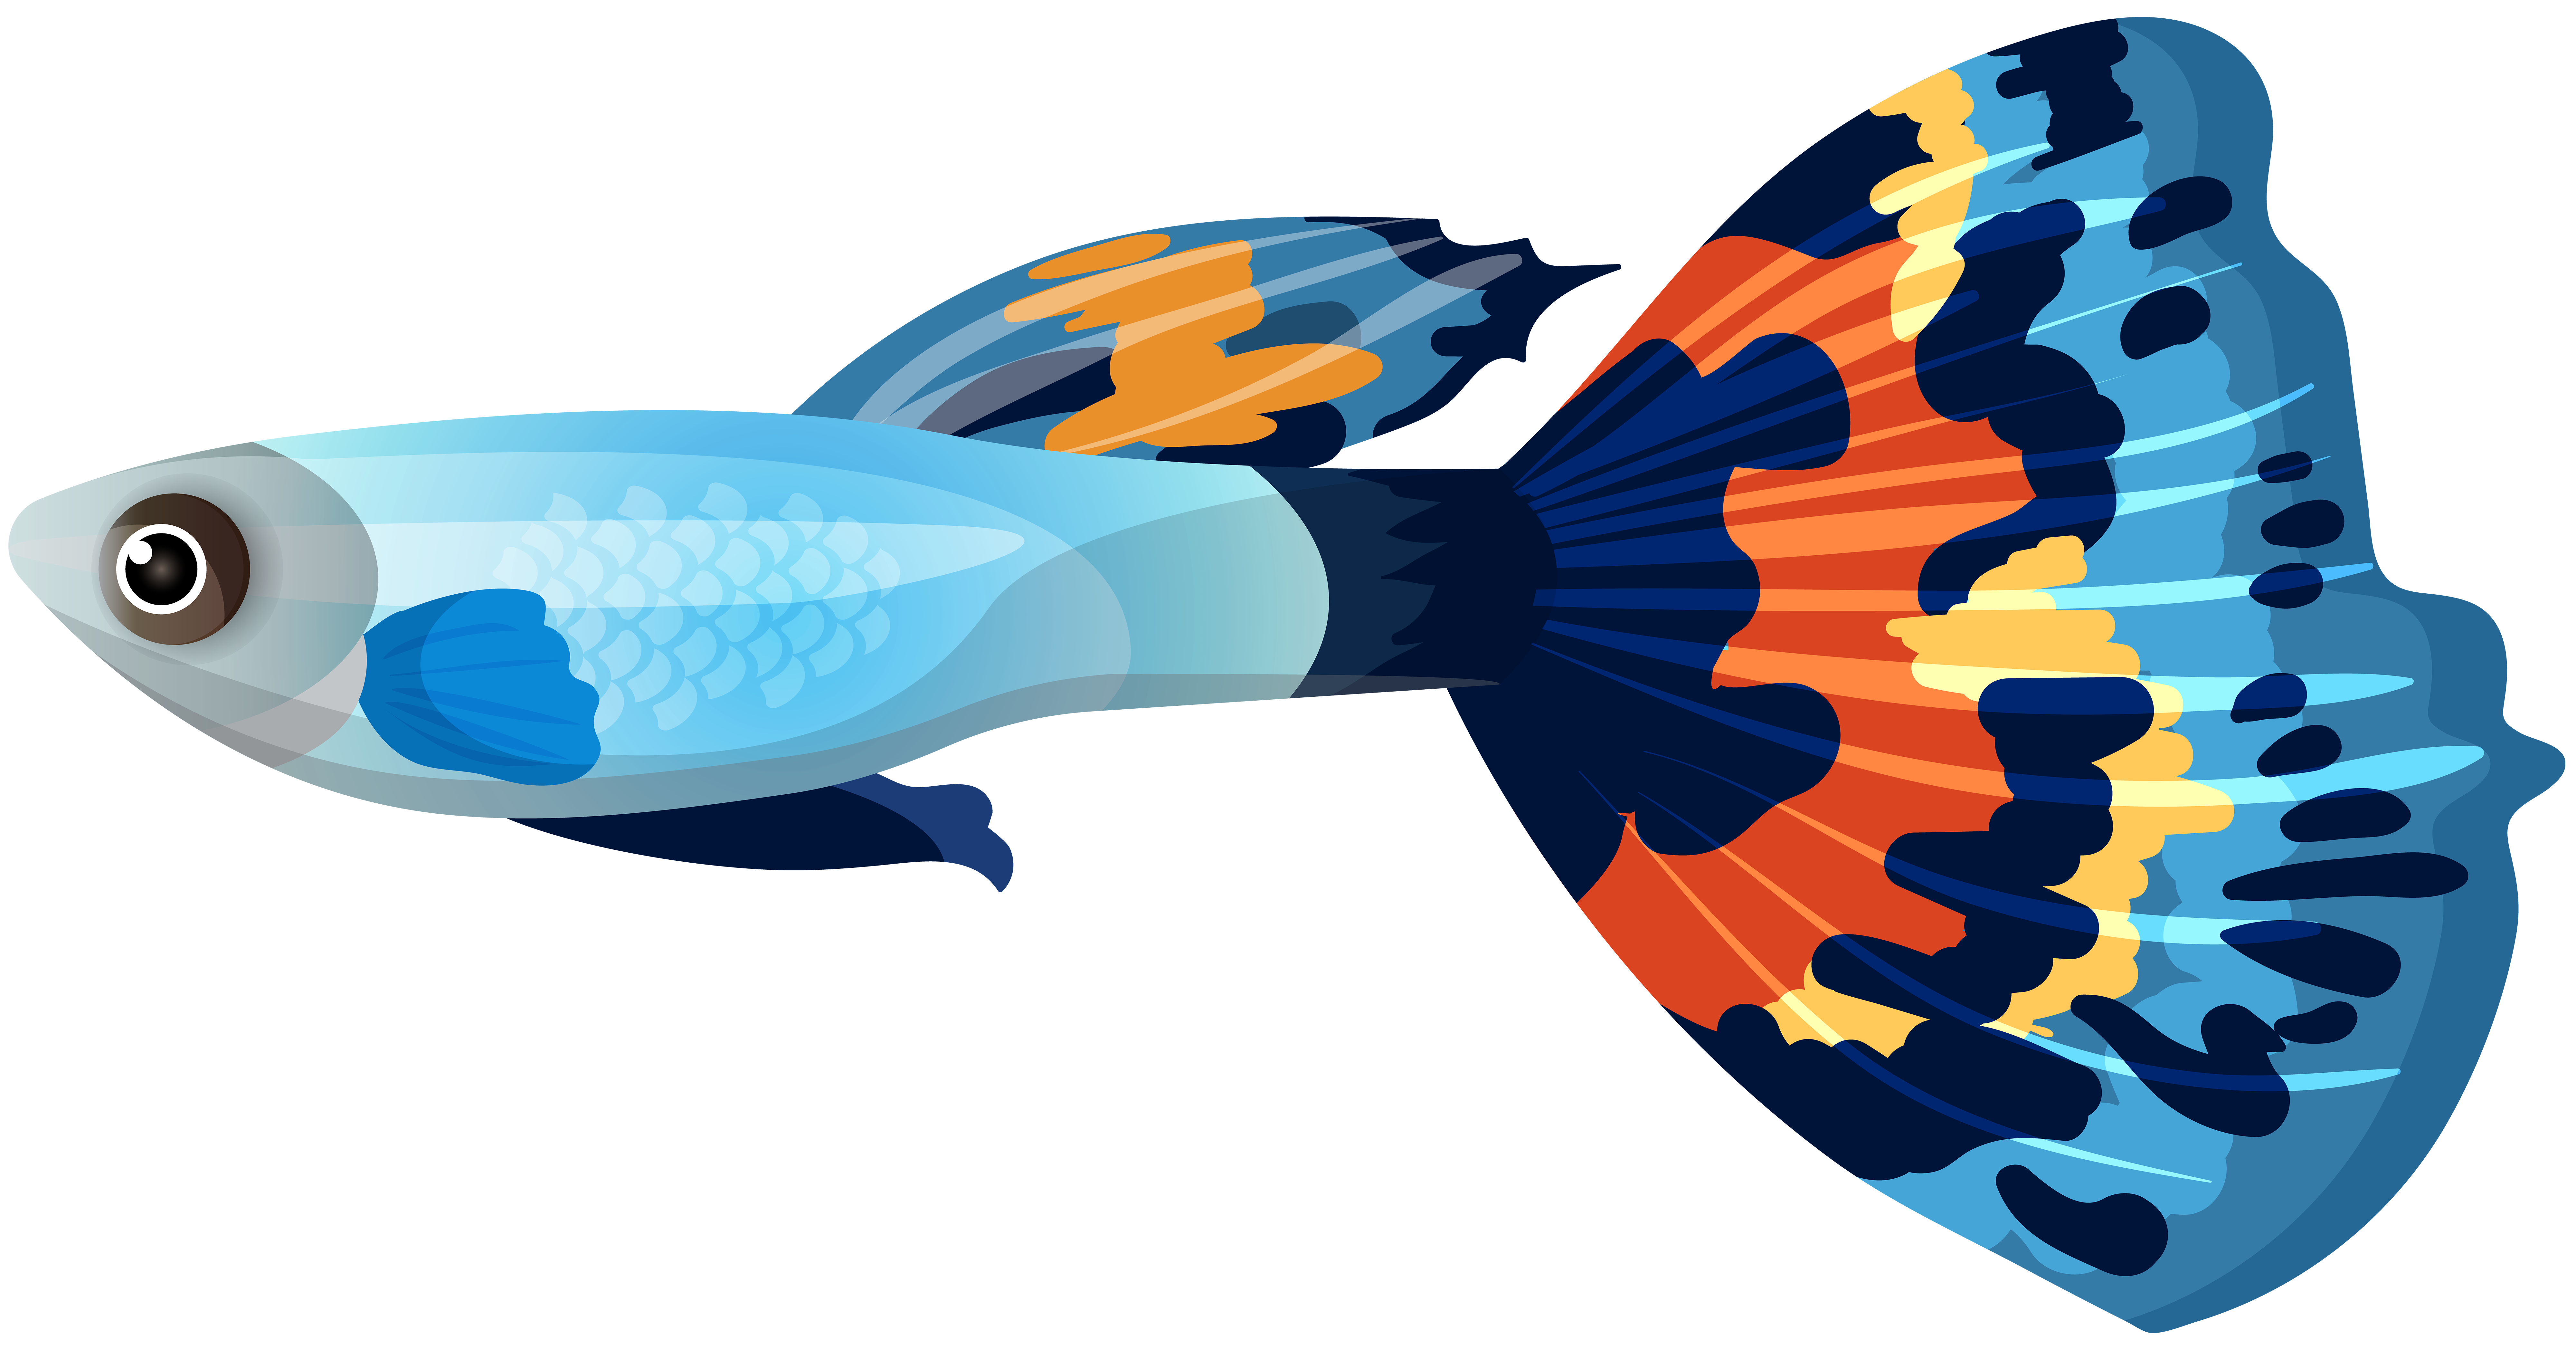 Clipart fish clip art. Male guppy png image